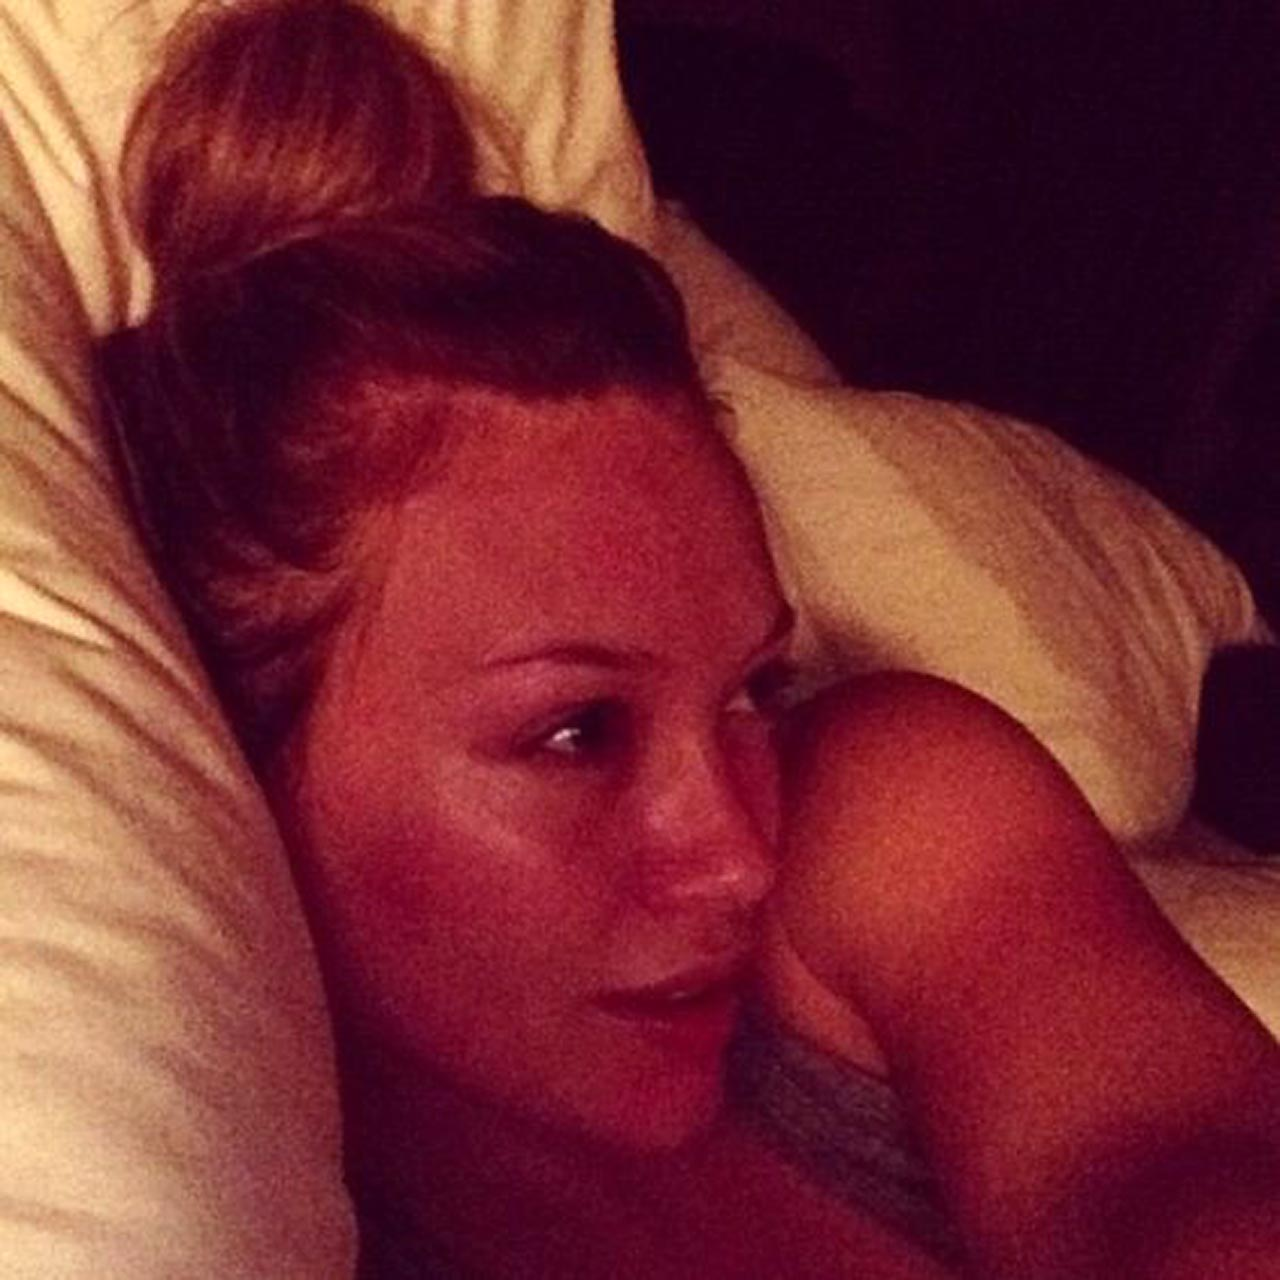 Hilary duff naked video